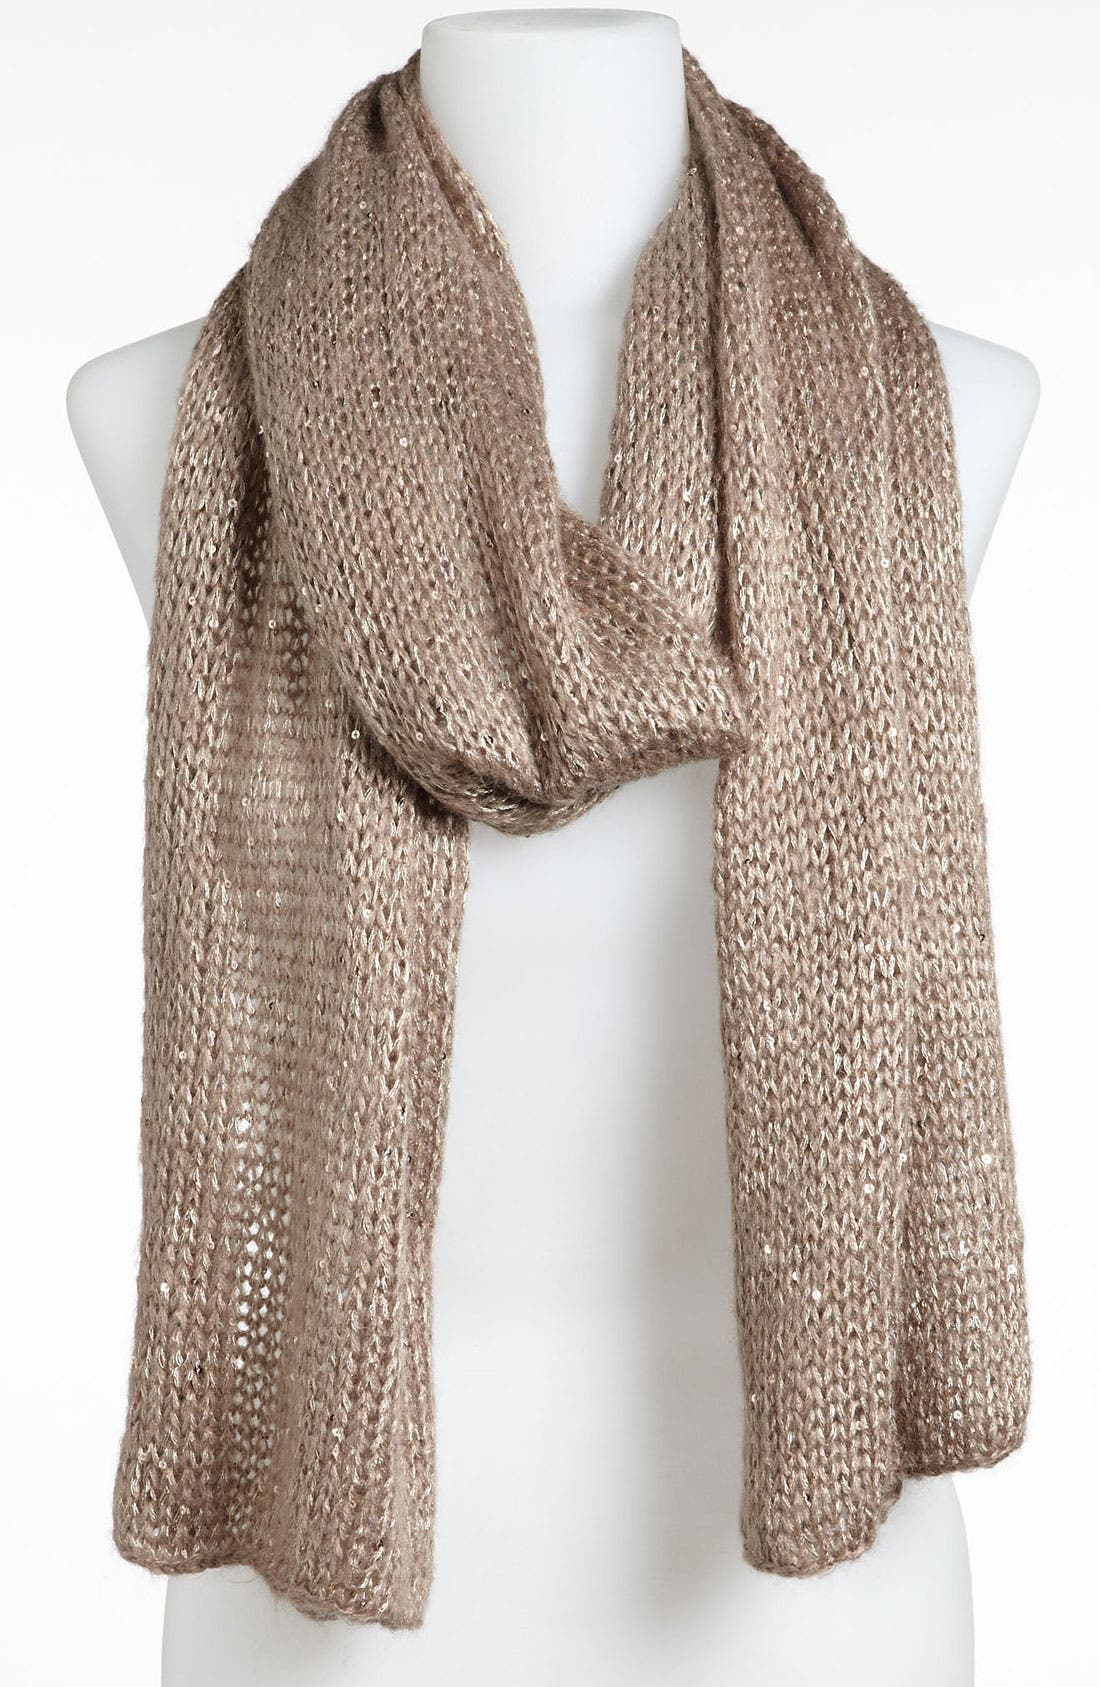 Alternate Image 1 Selected - BP. Sequin Metallic Knit Scarf